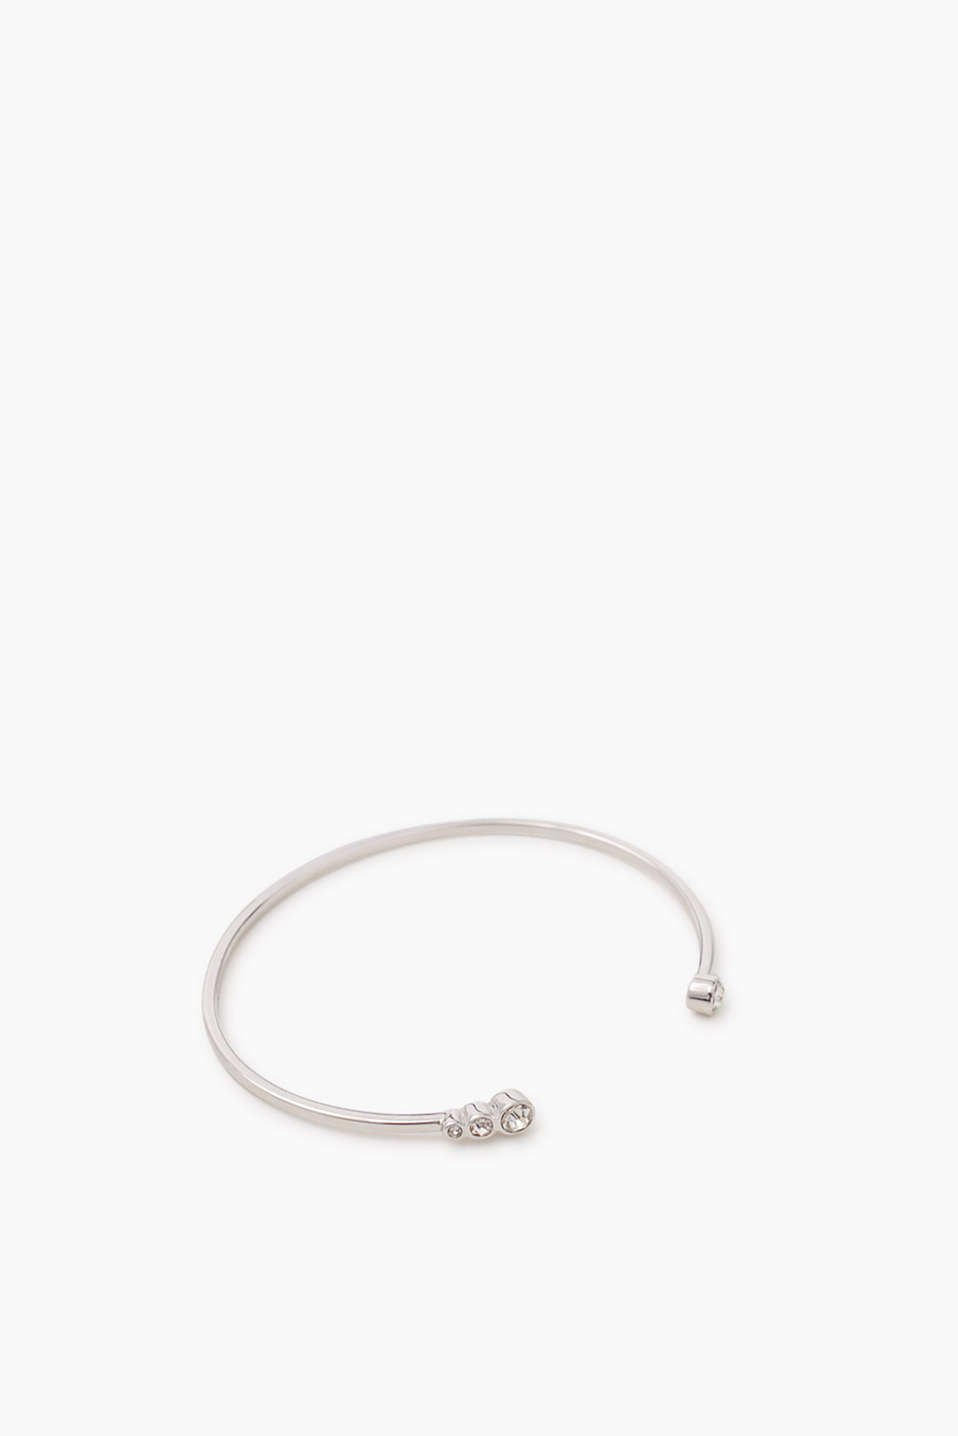 Open bangle made of high-quality metal with a white stone trim, approx. 3 mm wide